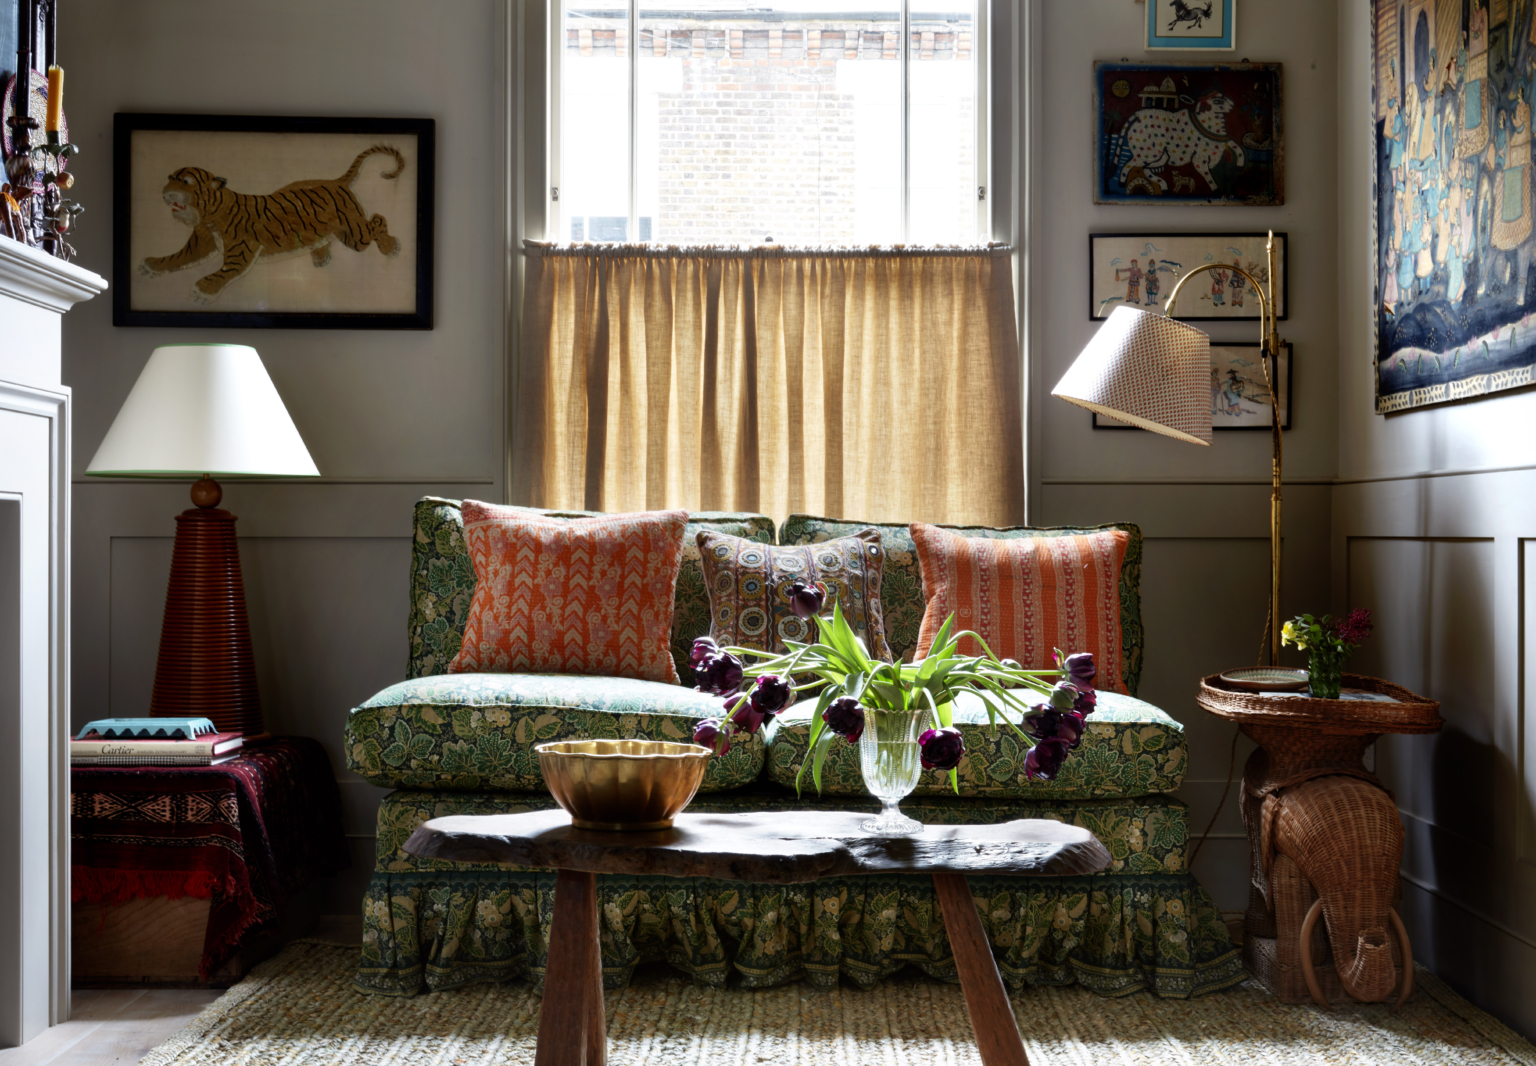 The Case for Cozy: Designer Lonika Chande's Family Cottage in West London